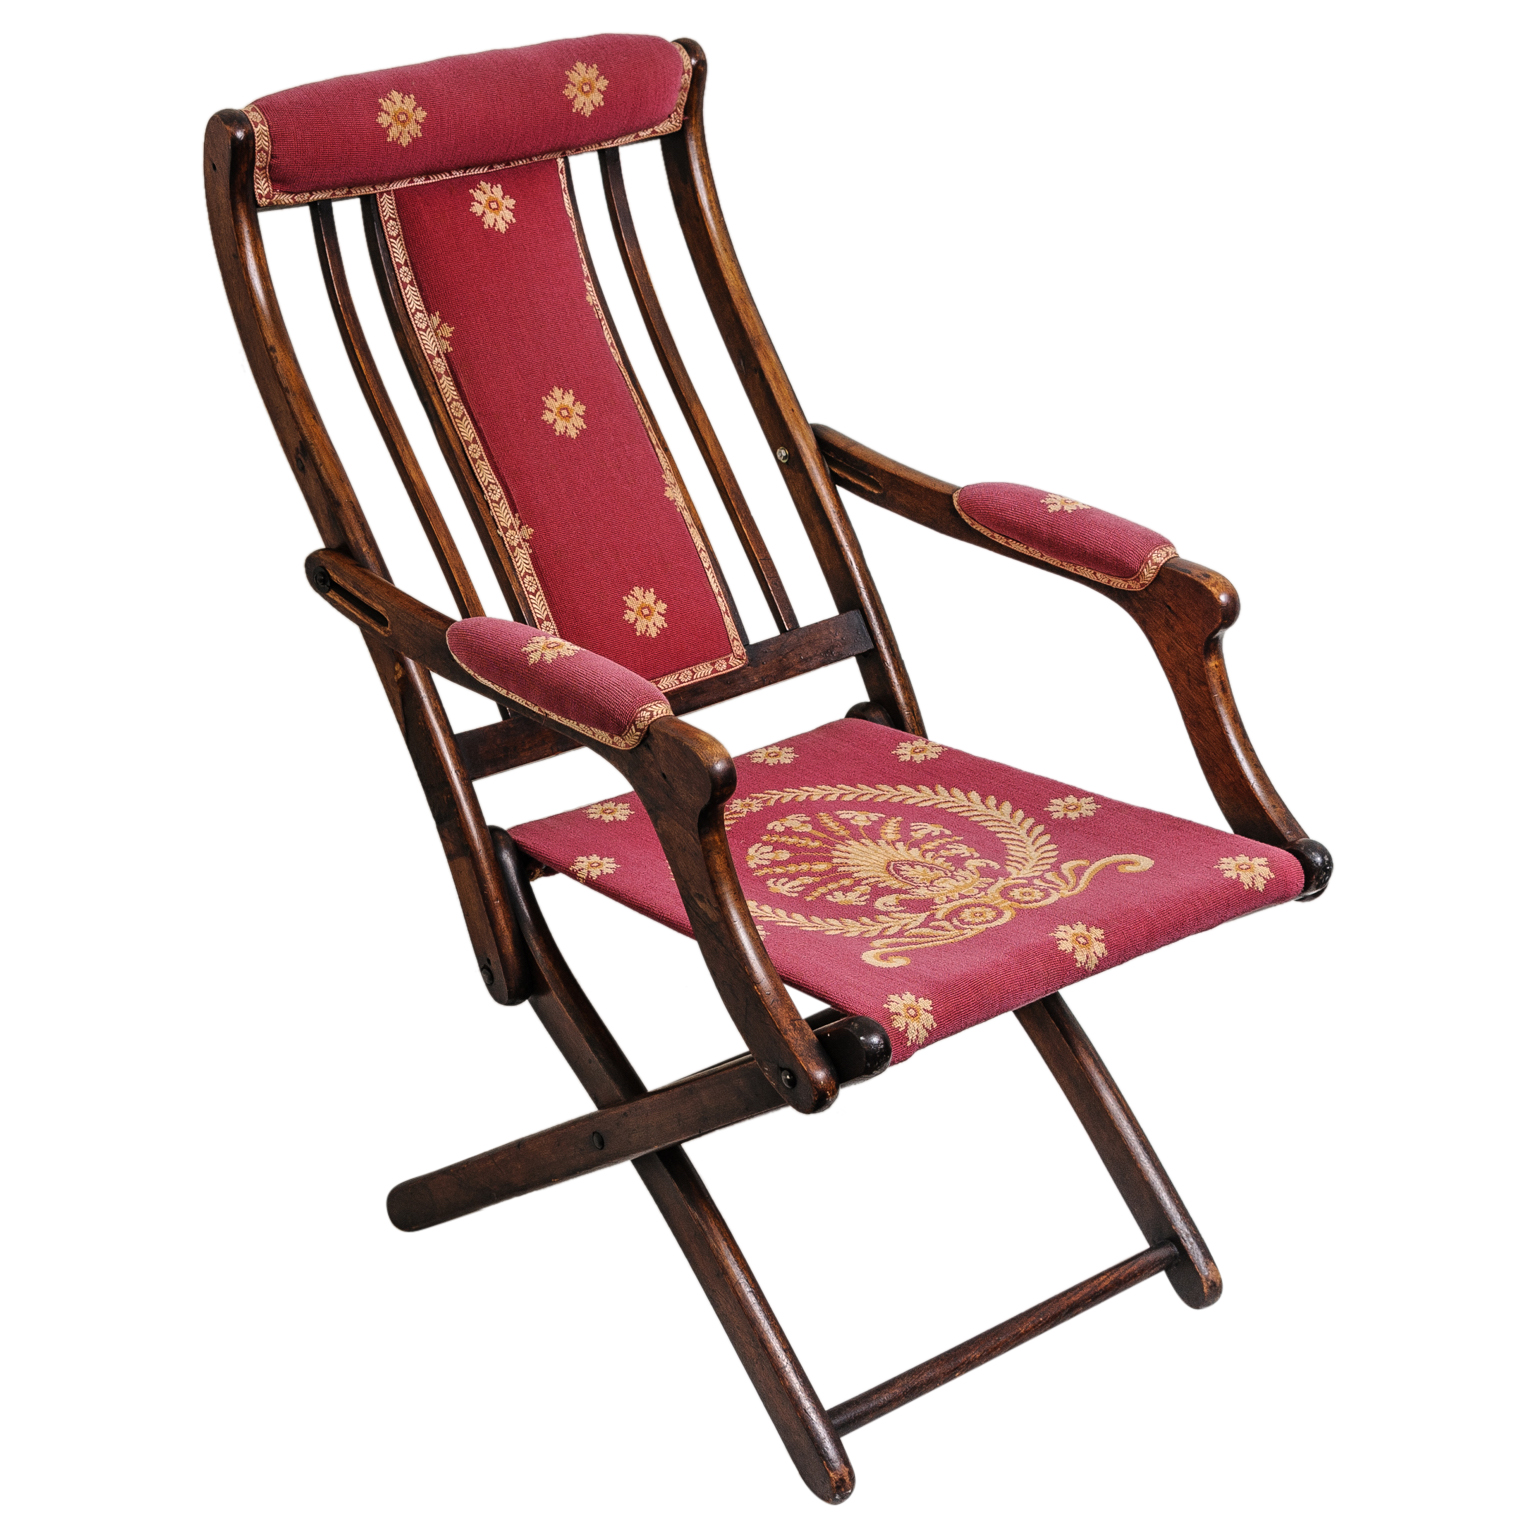 19th Century French Napoleonic Campaign Style Folding Chair On Antique Ro